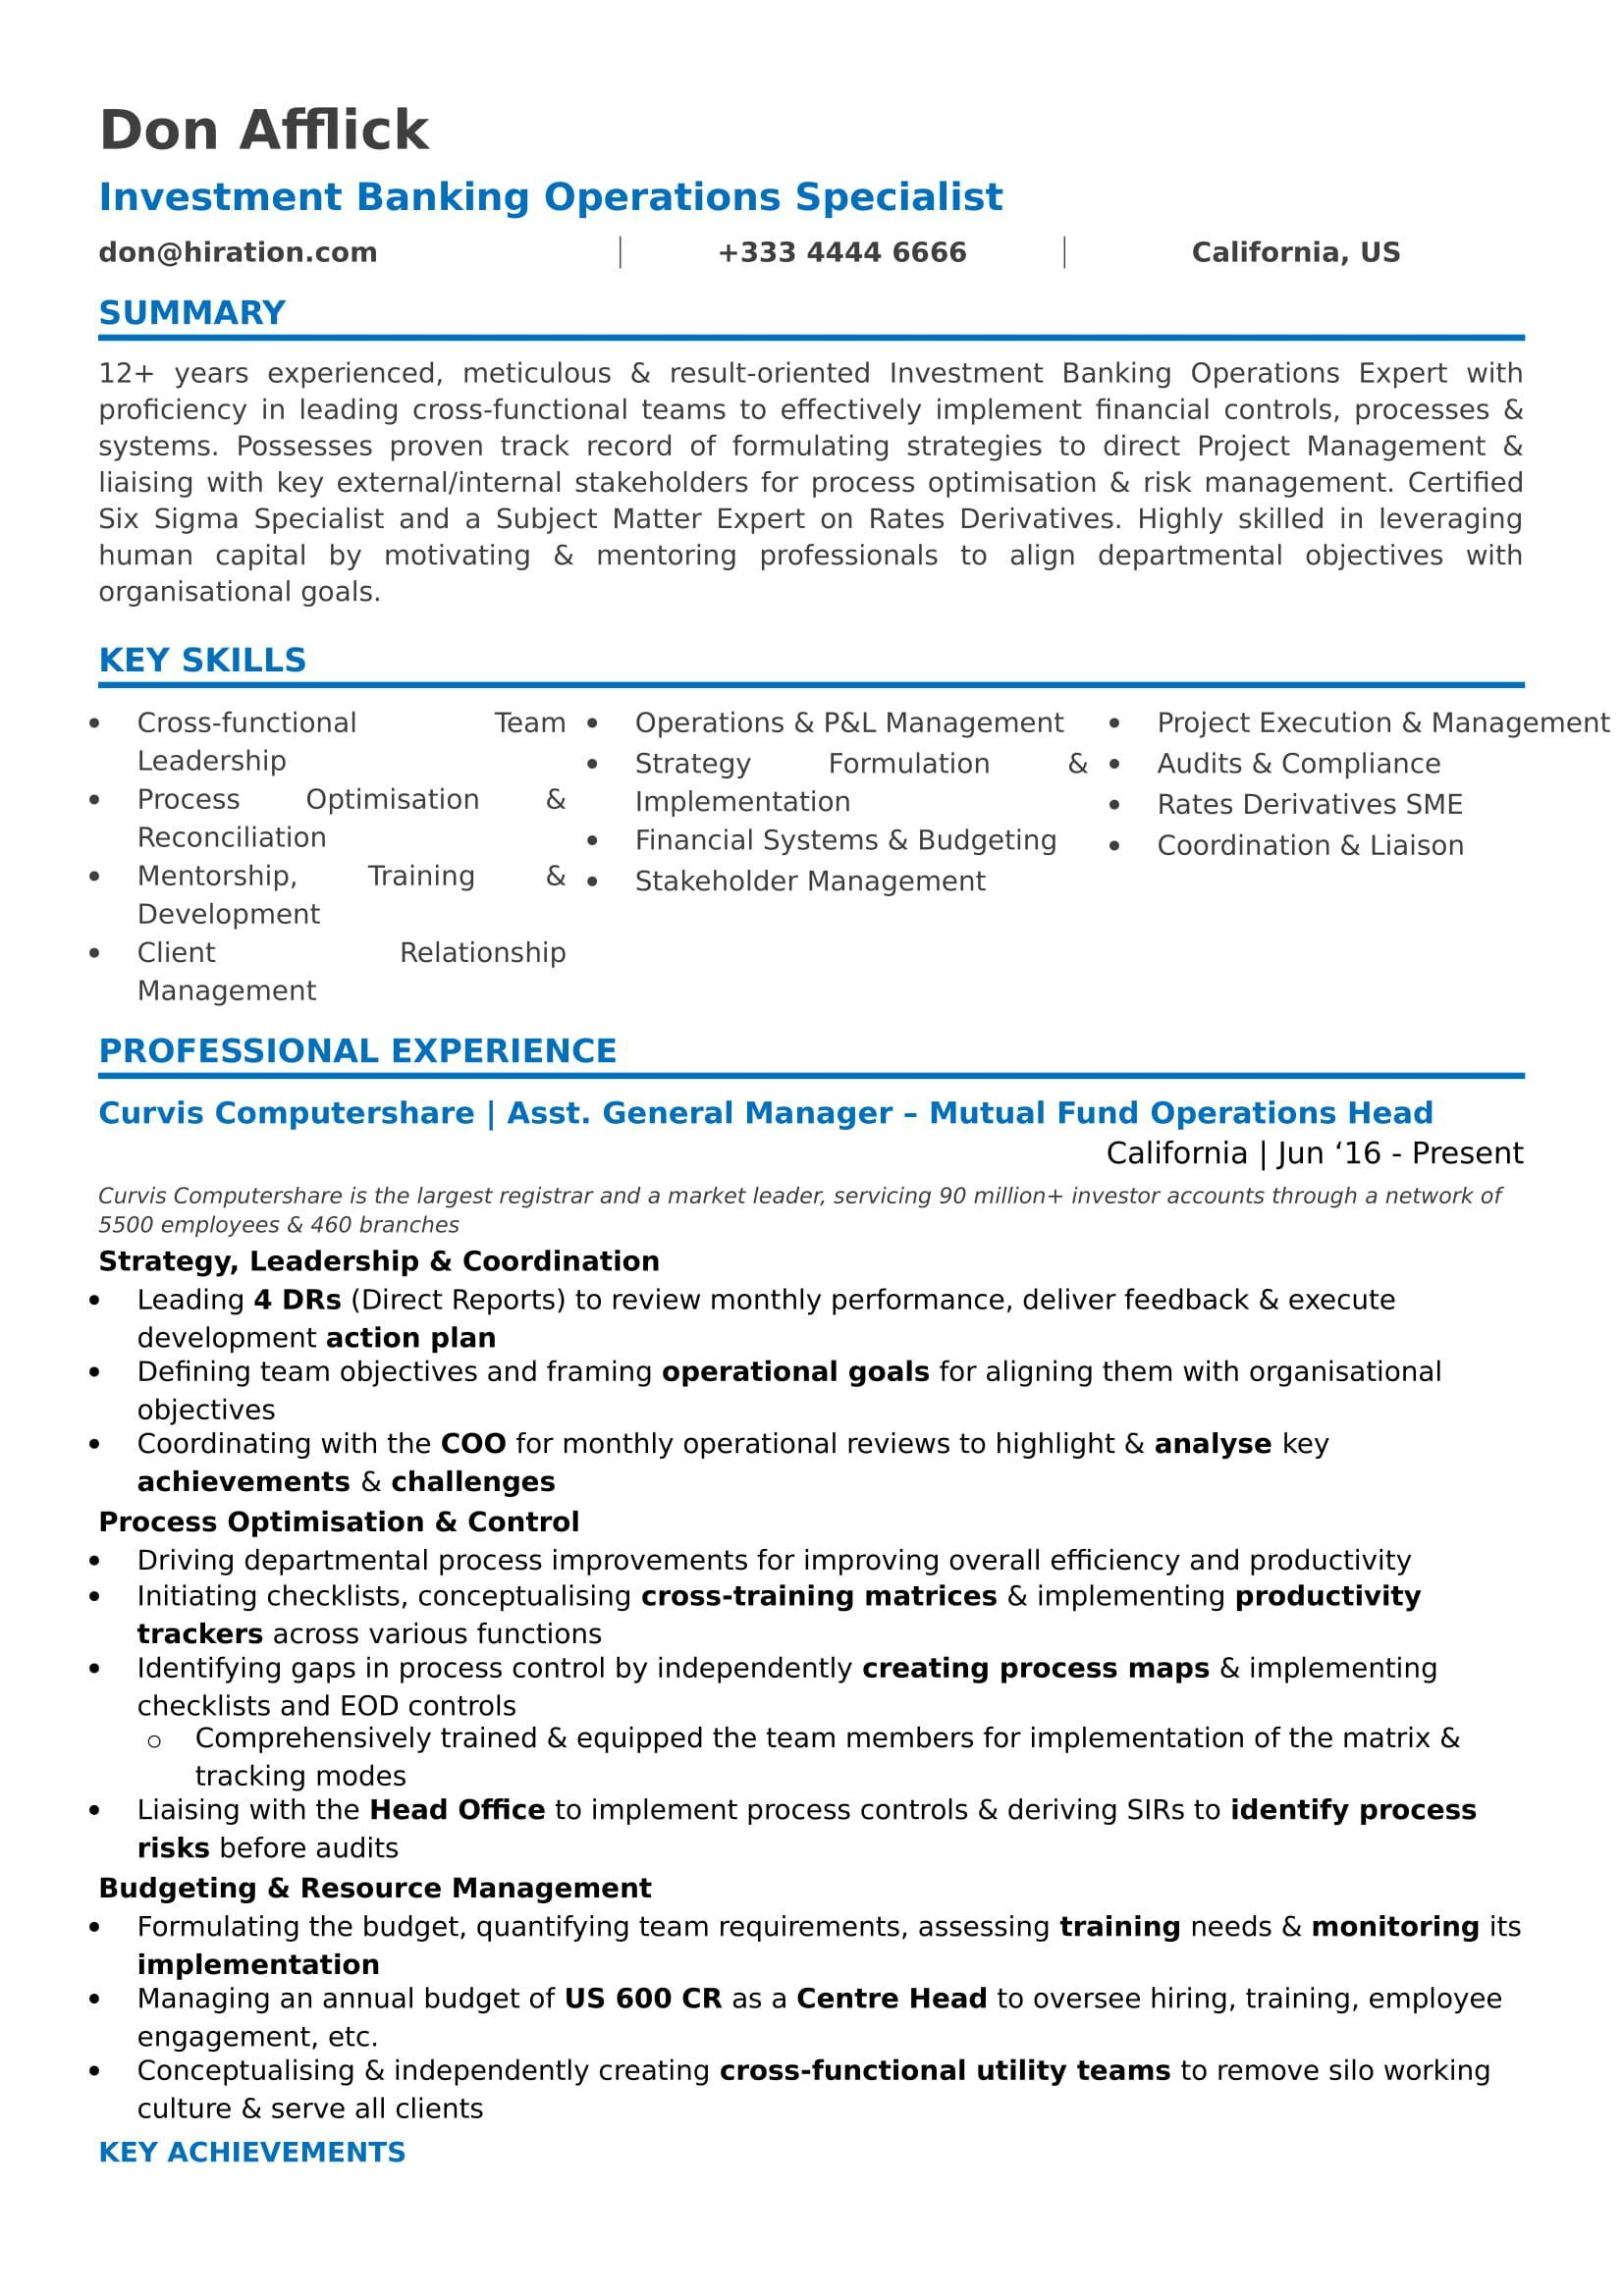 career change resume guide to for functional template professional summary chemotherapy Resume Professional Summary For Resume Career Change